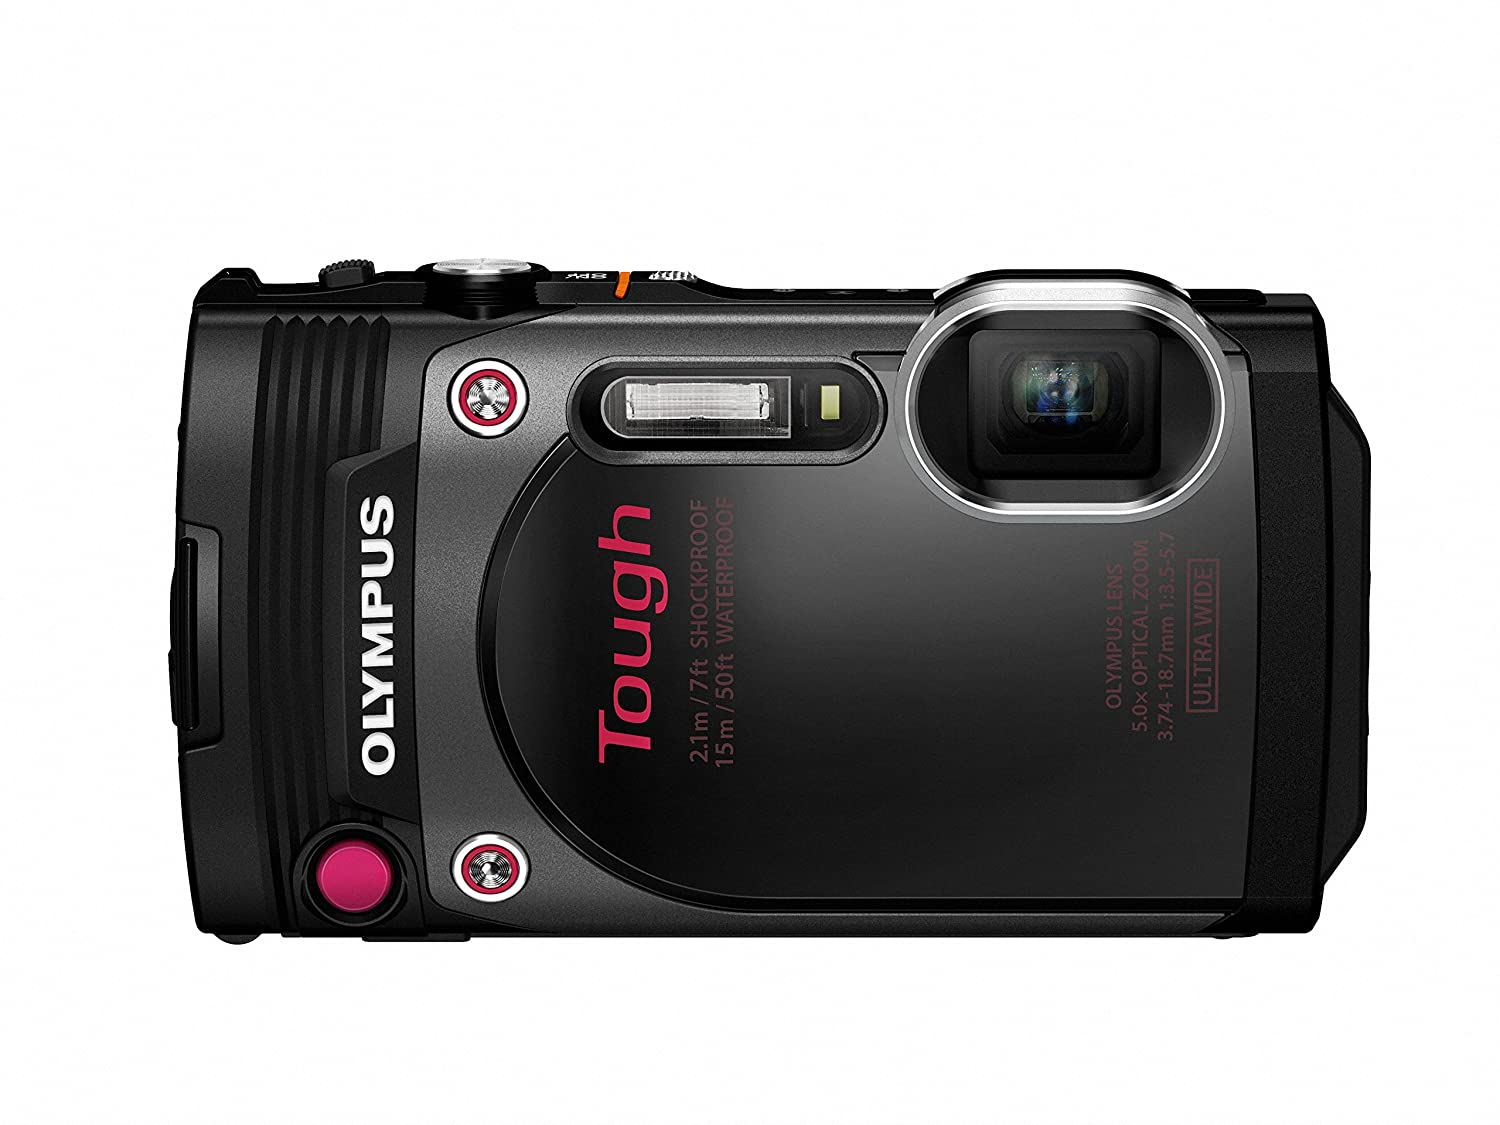 Olympus TG-870 Tough Waterproof Digital Camera (Black)